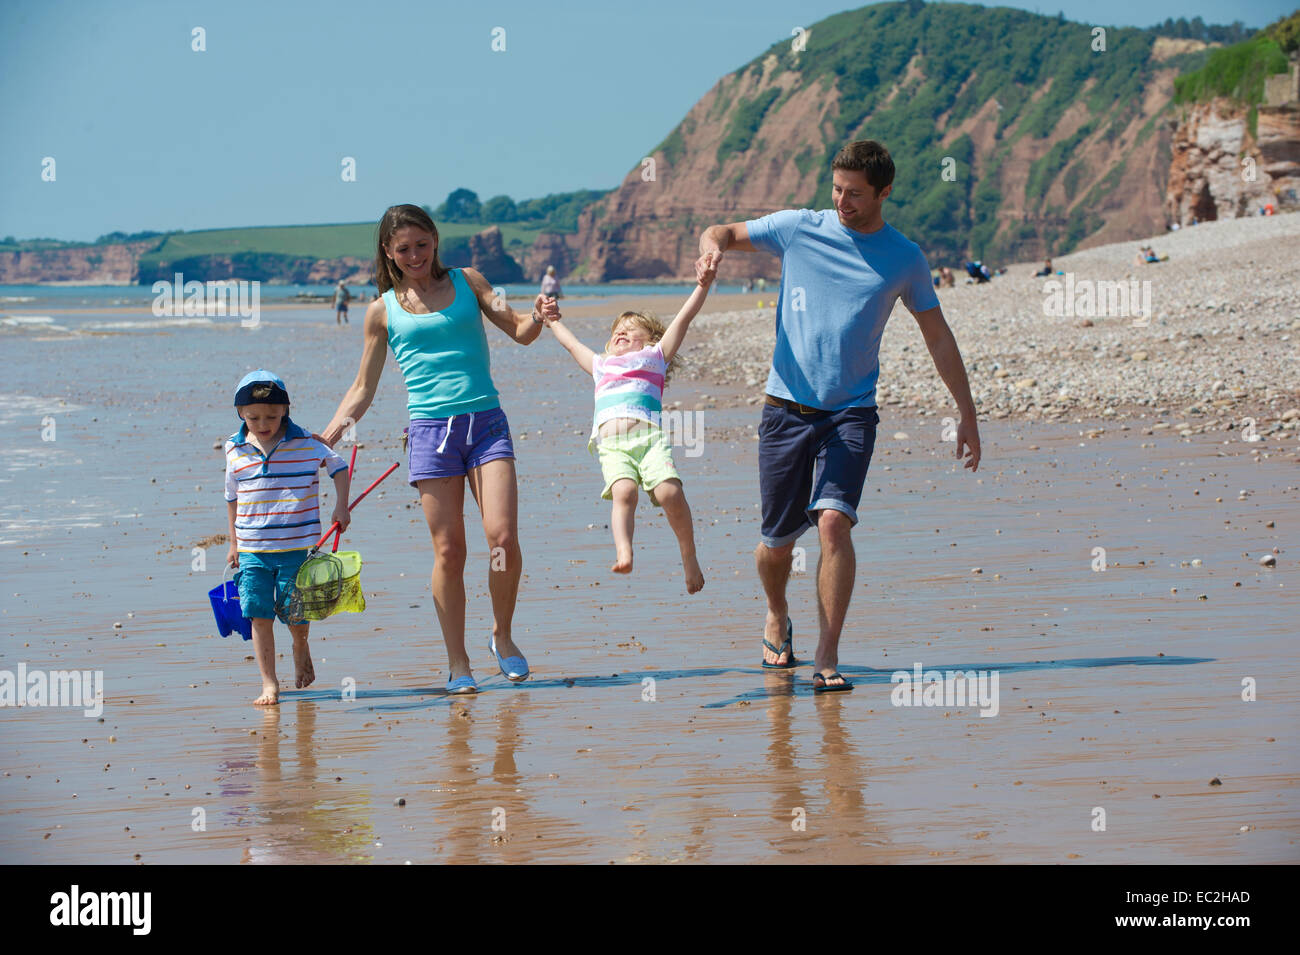 Family on the beach at Sidmouth on holiday having fun - Stock Image